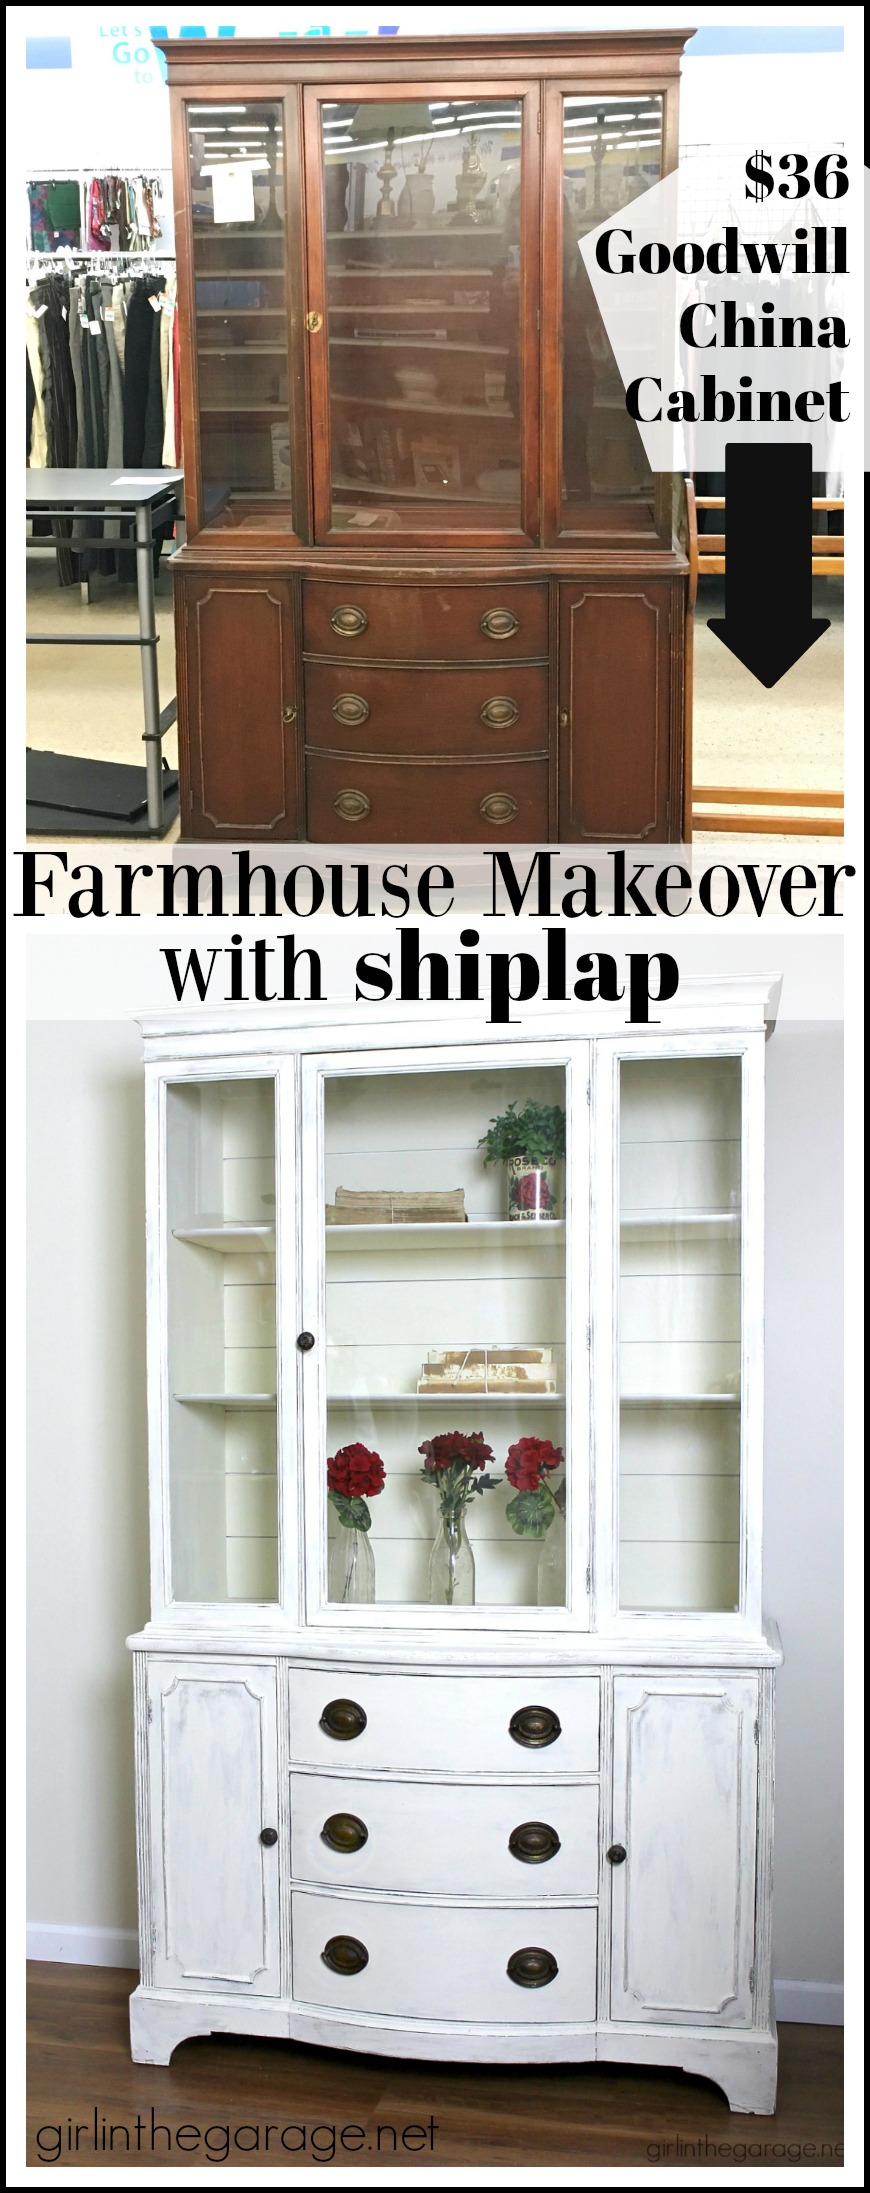 Farmhouse china cabinet makeover with shiplap - Girl in the Garage